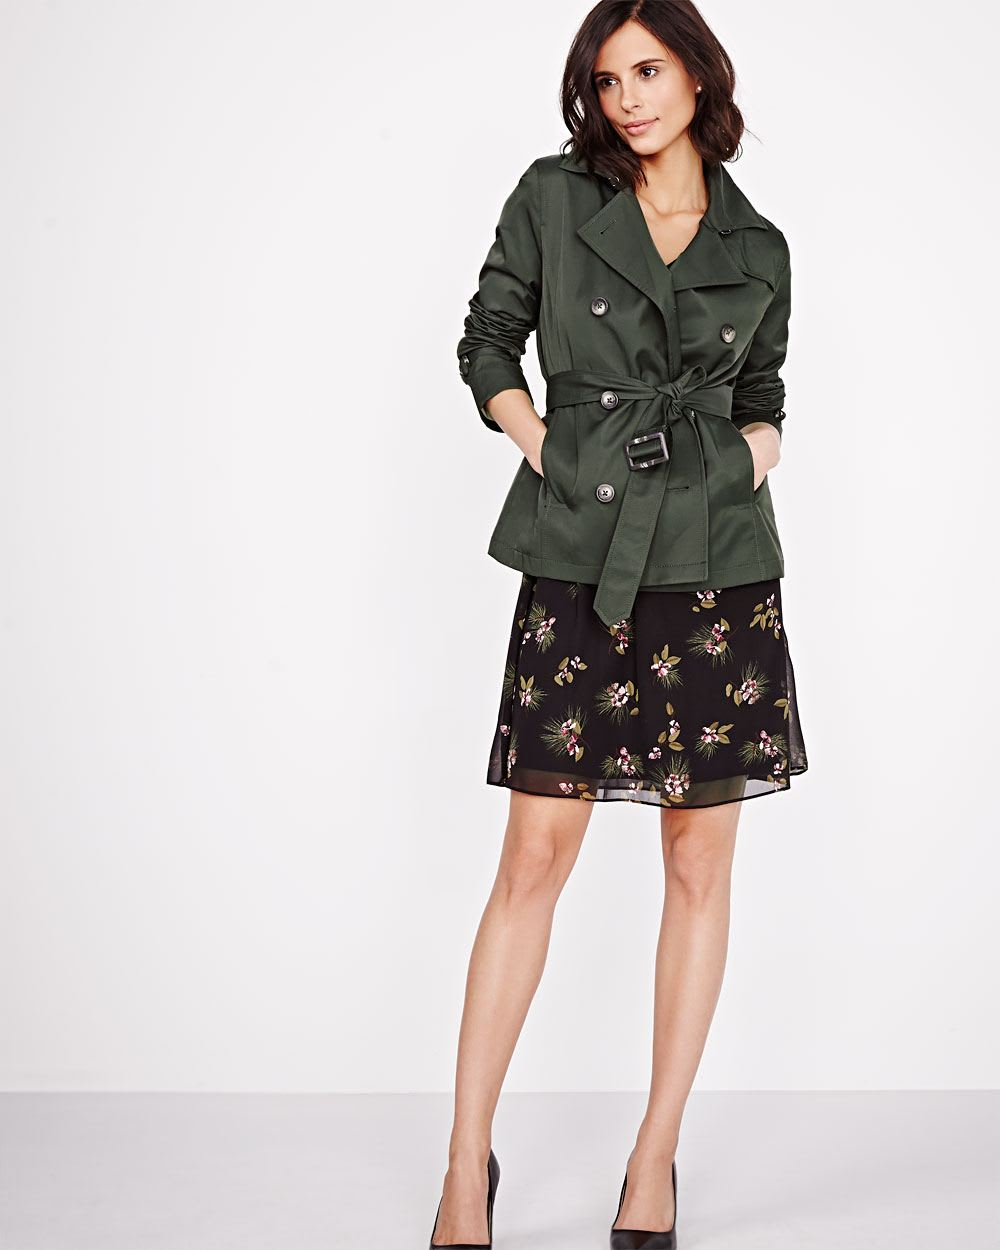 The military jacket, elegant white top and tailored short add a preppy feel to this outfit. Blazer and shorts: Banana Republic, Shoes and bag: Zara Sunglasses: Ray-Ban We love this more causal take on the military jacket.